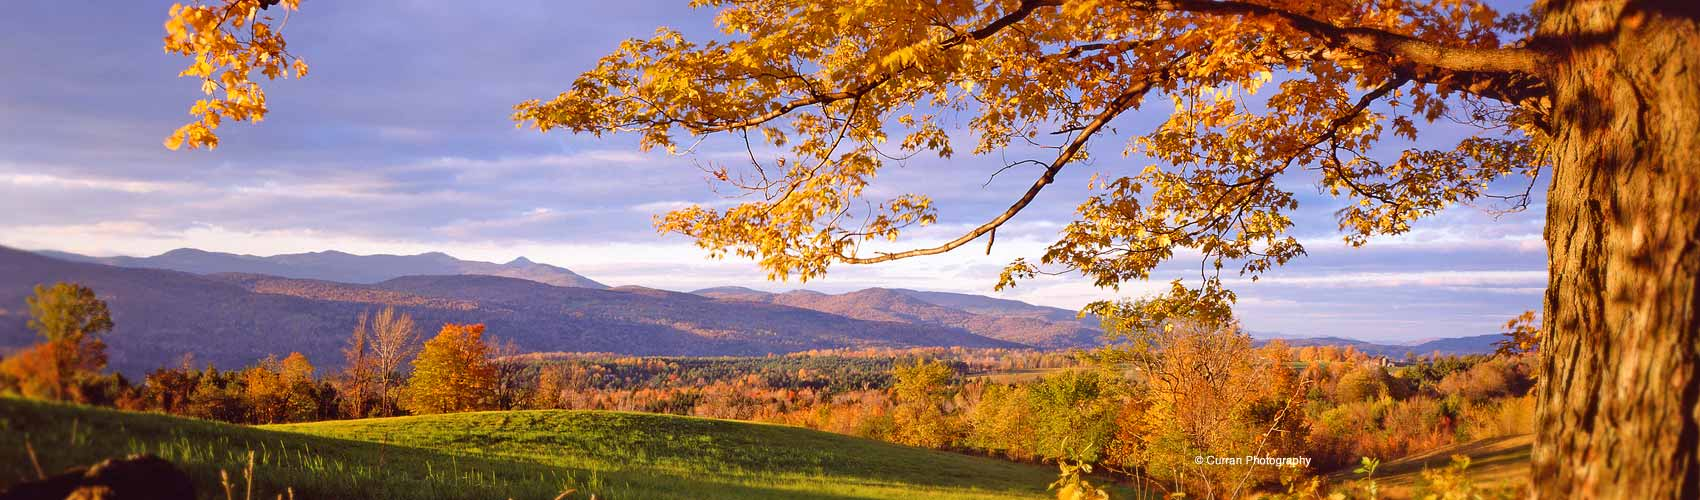 an analysis of the poetry of robert frost reviews vermont in the fall